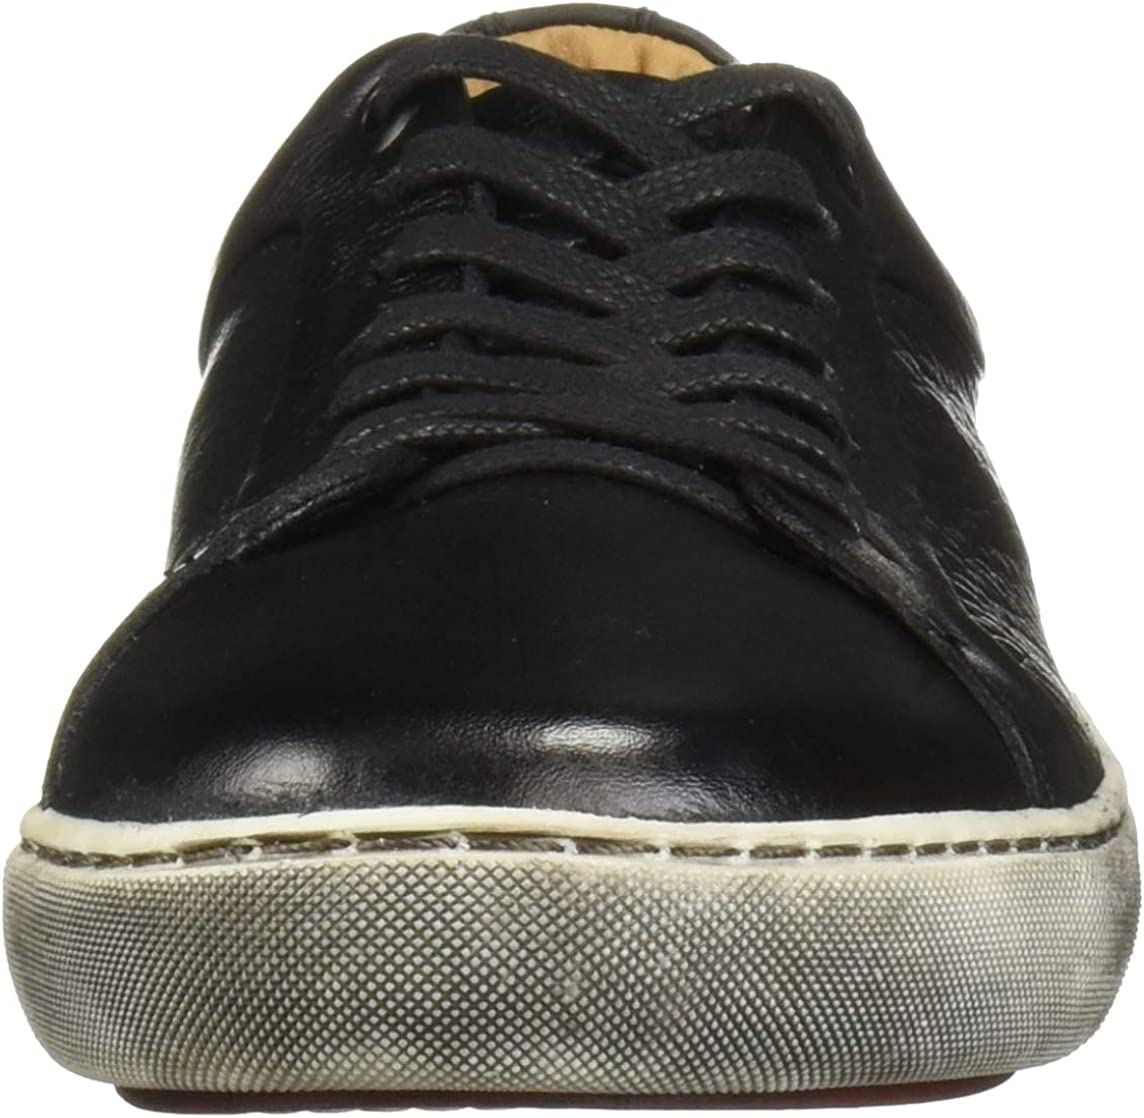 Driver Club USA Mens Leather Made in Brazil San Francisco Sneaker Black White Brushed Sole